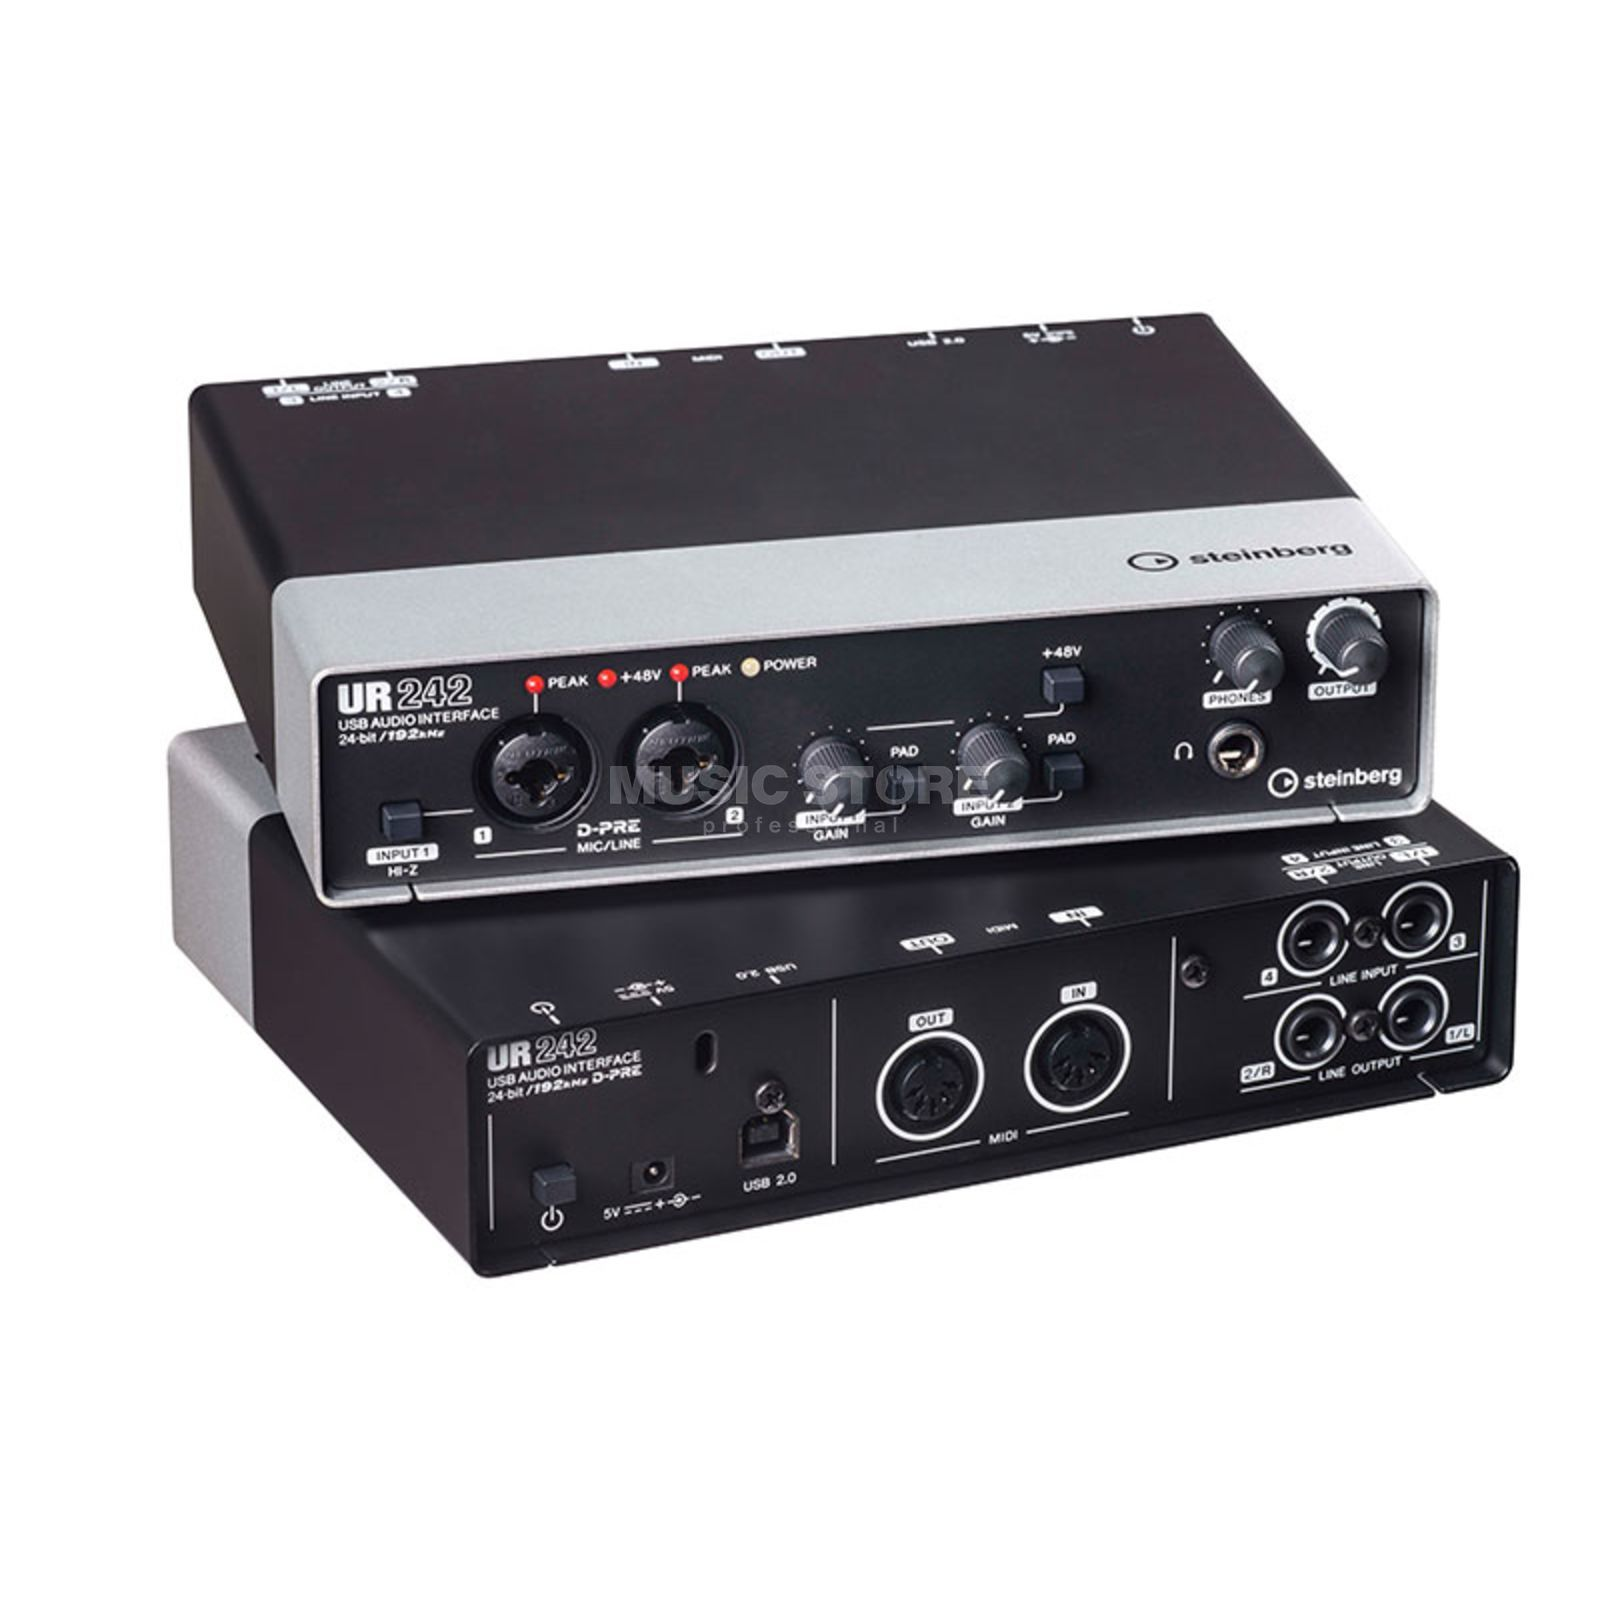 Steinberg UR242 4x2 USB 2.0 Audio-Interface Produktbillede